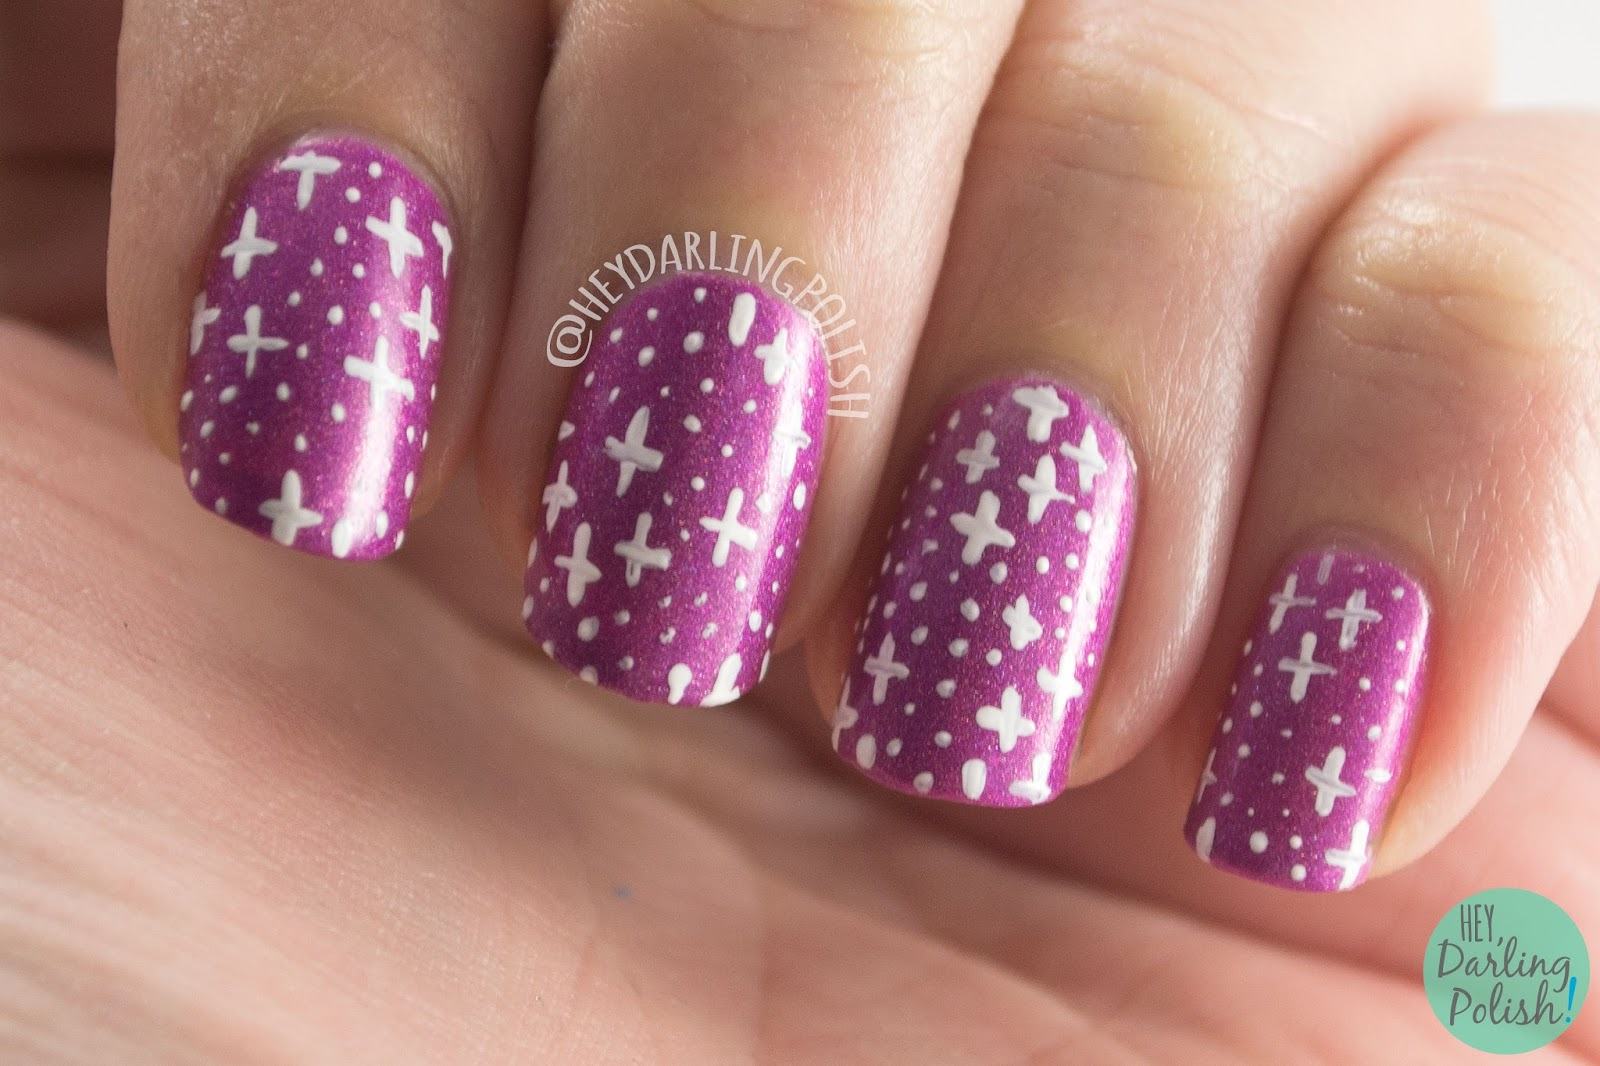 nails, nail art, nail polish, hey darling polish, ice polish, indie polish, valentines, do ya love me, pink, purple, holo, stars, pattern